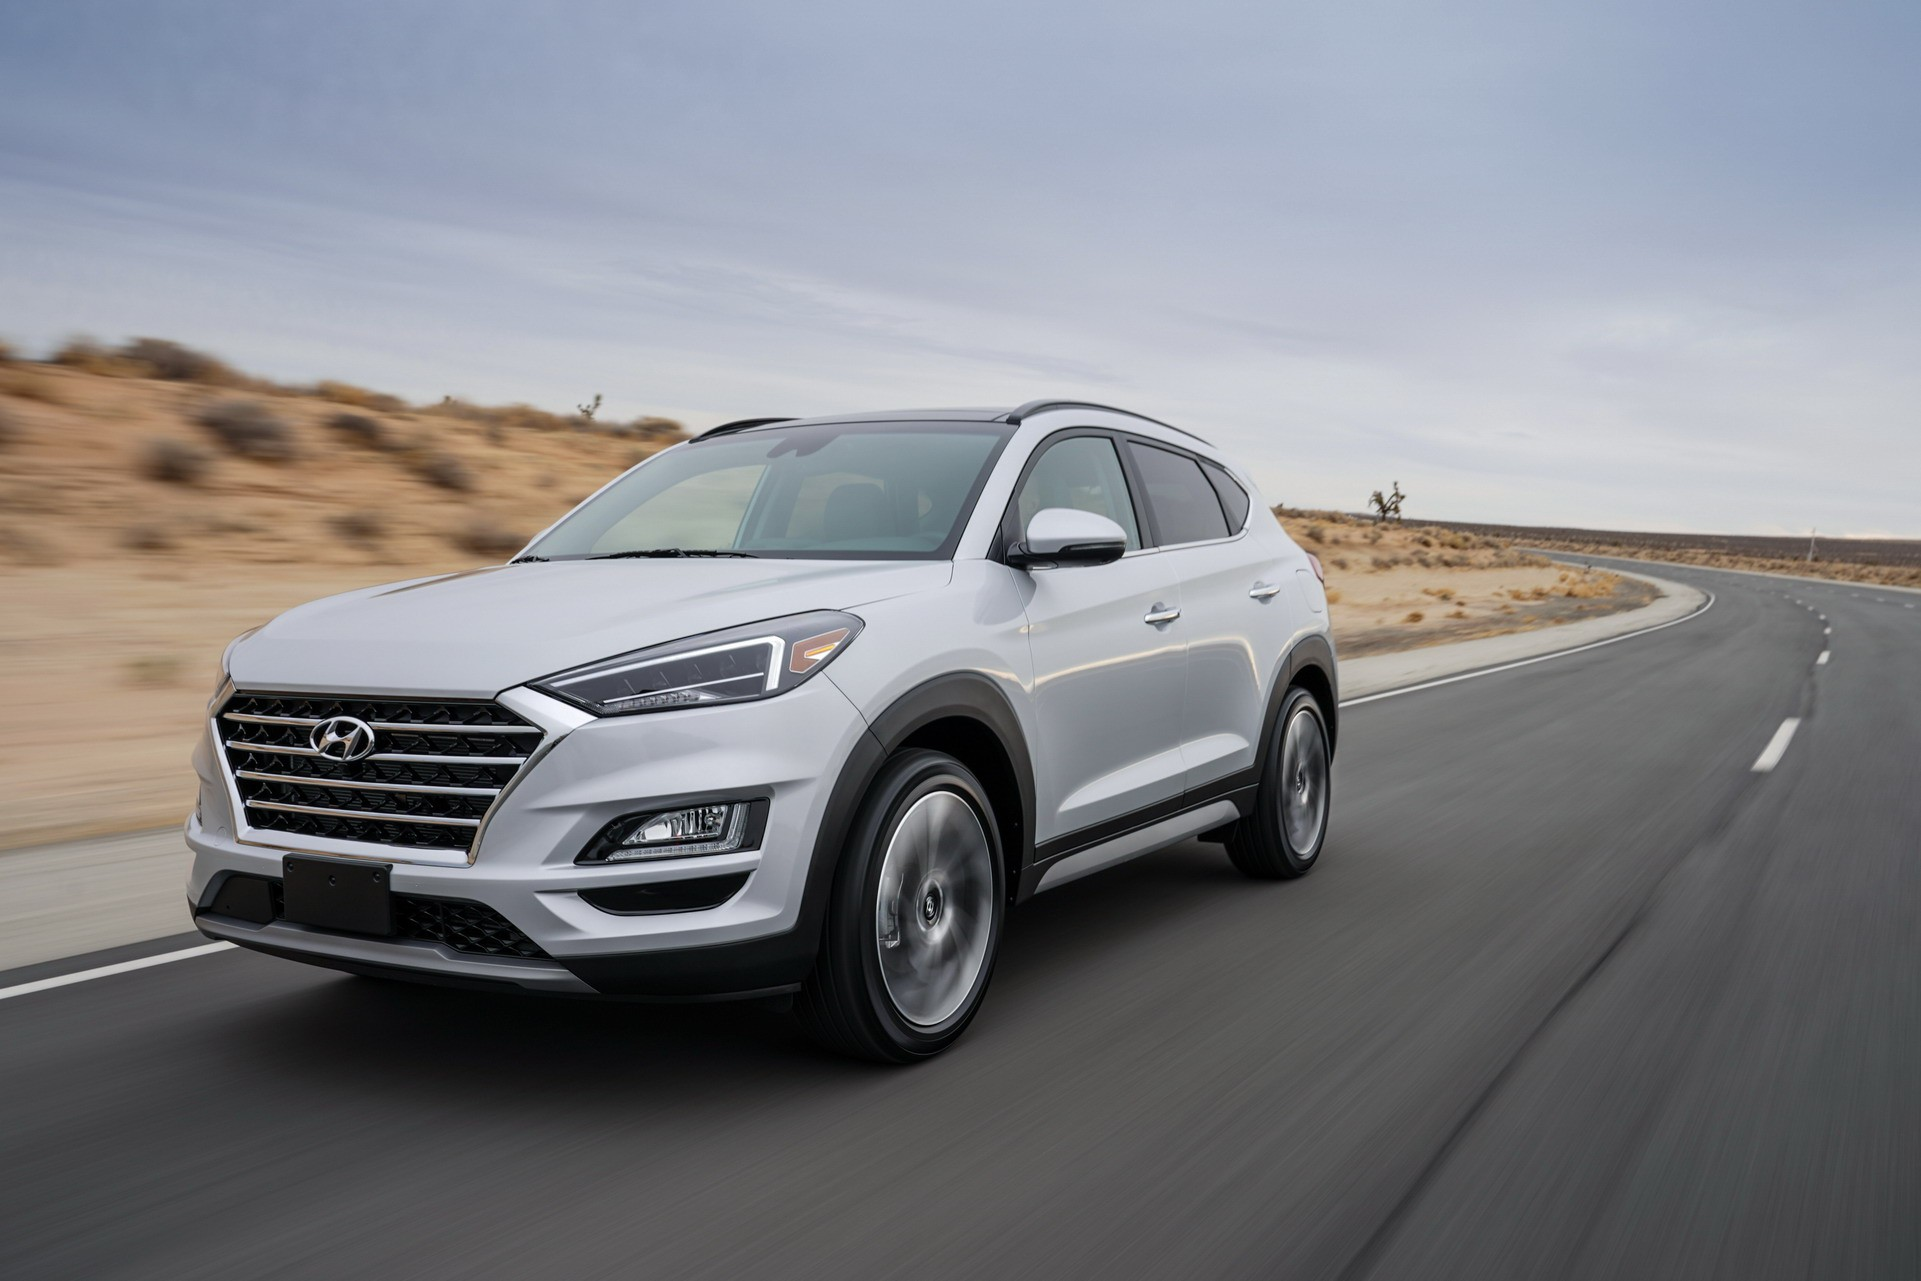 2019 hyundai tucson debuts with refreshed face drops 1 6 turbo autoevolution. Black Bedroom Furniture Sets. Home Design Ideas